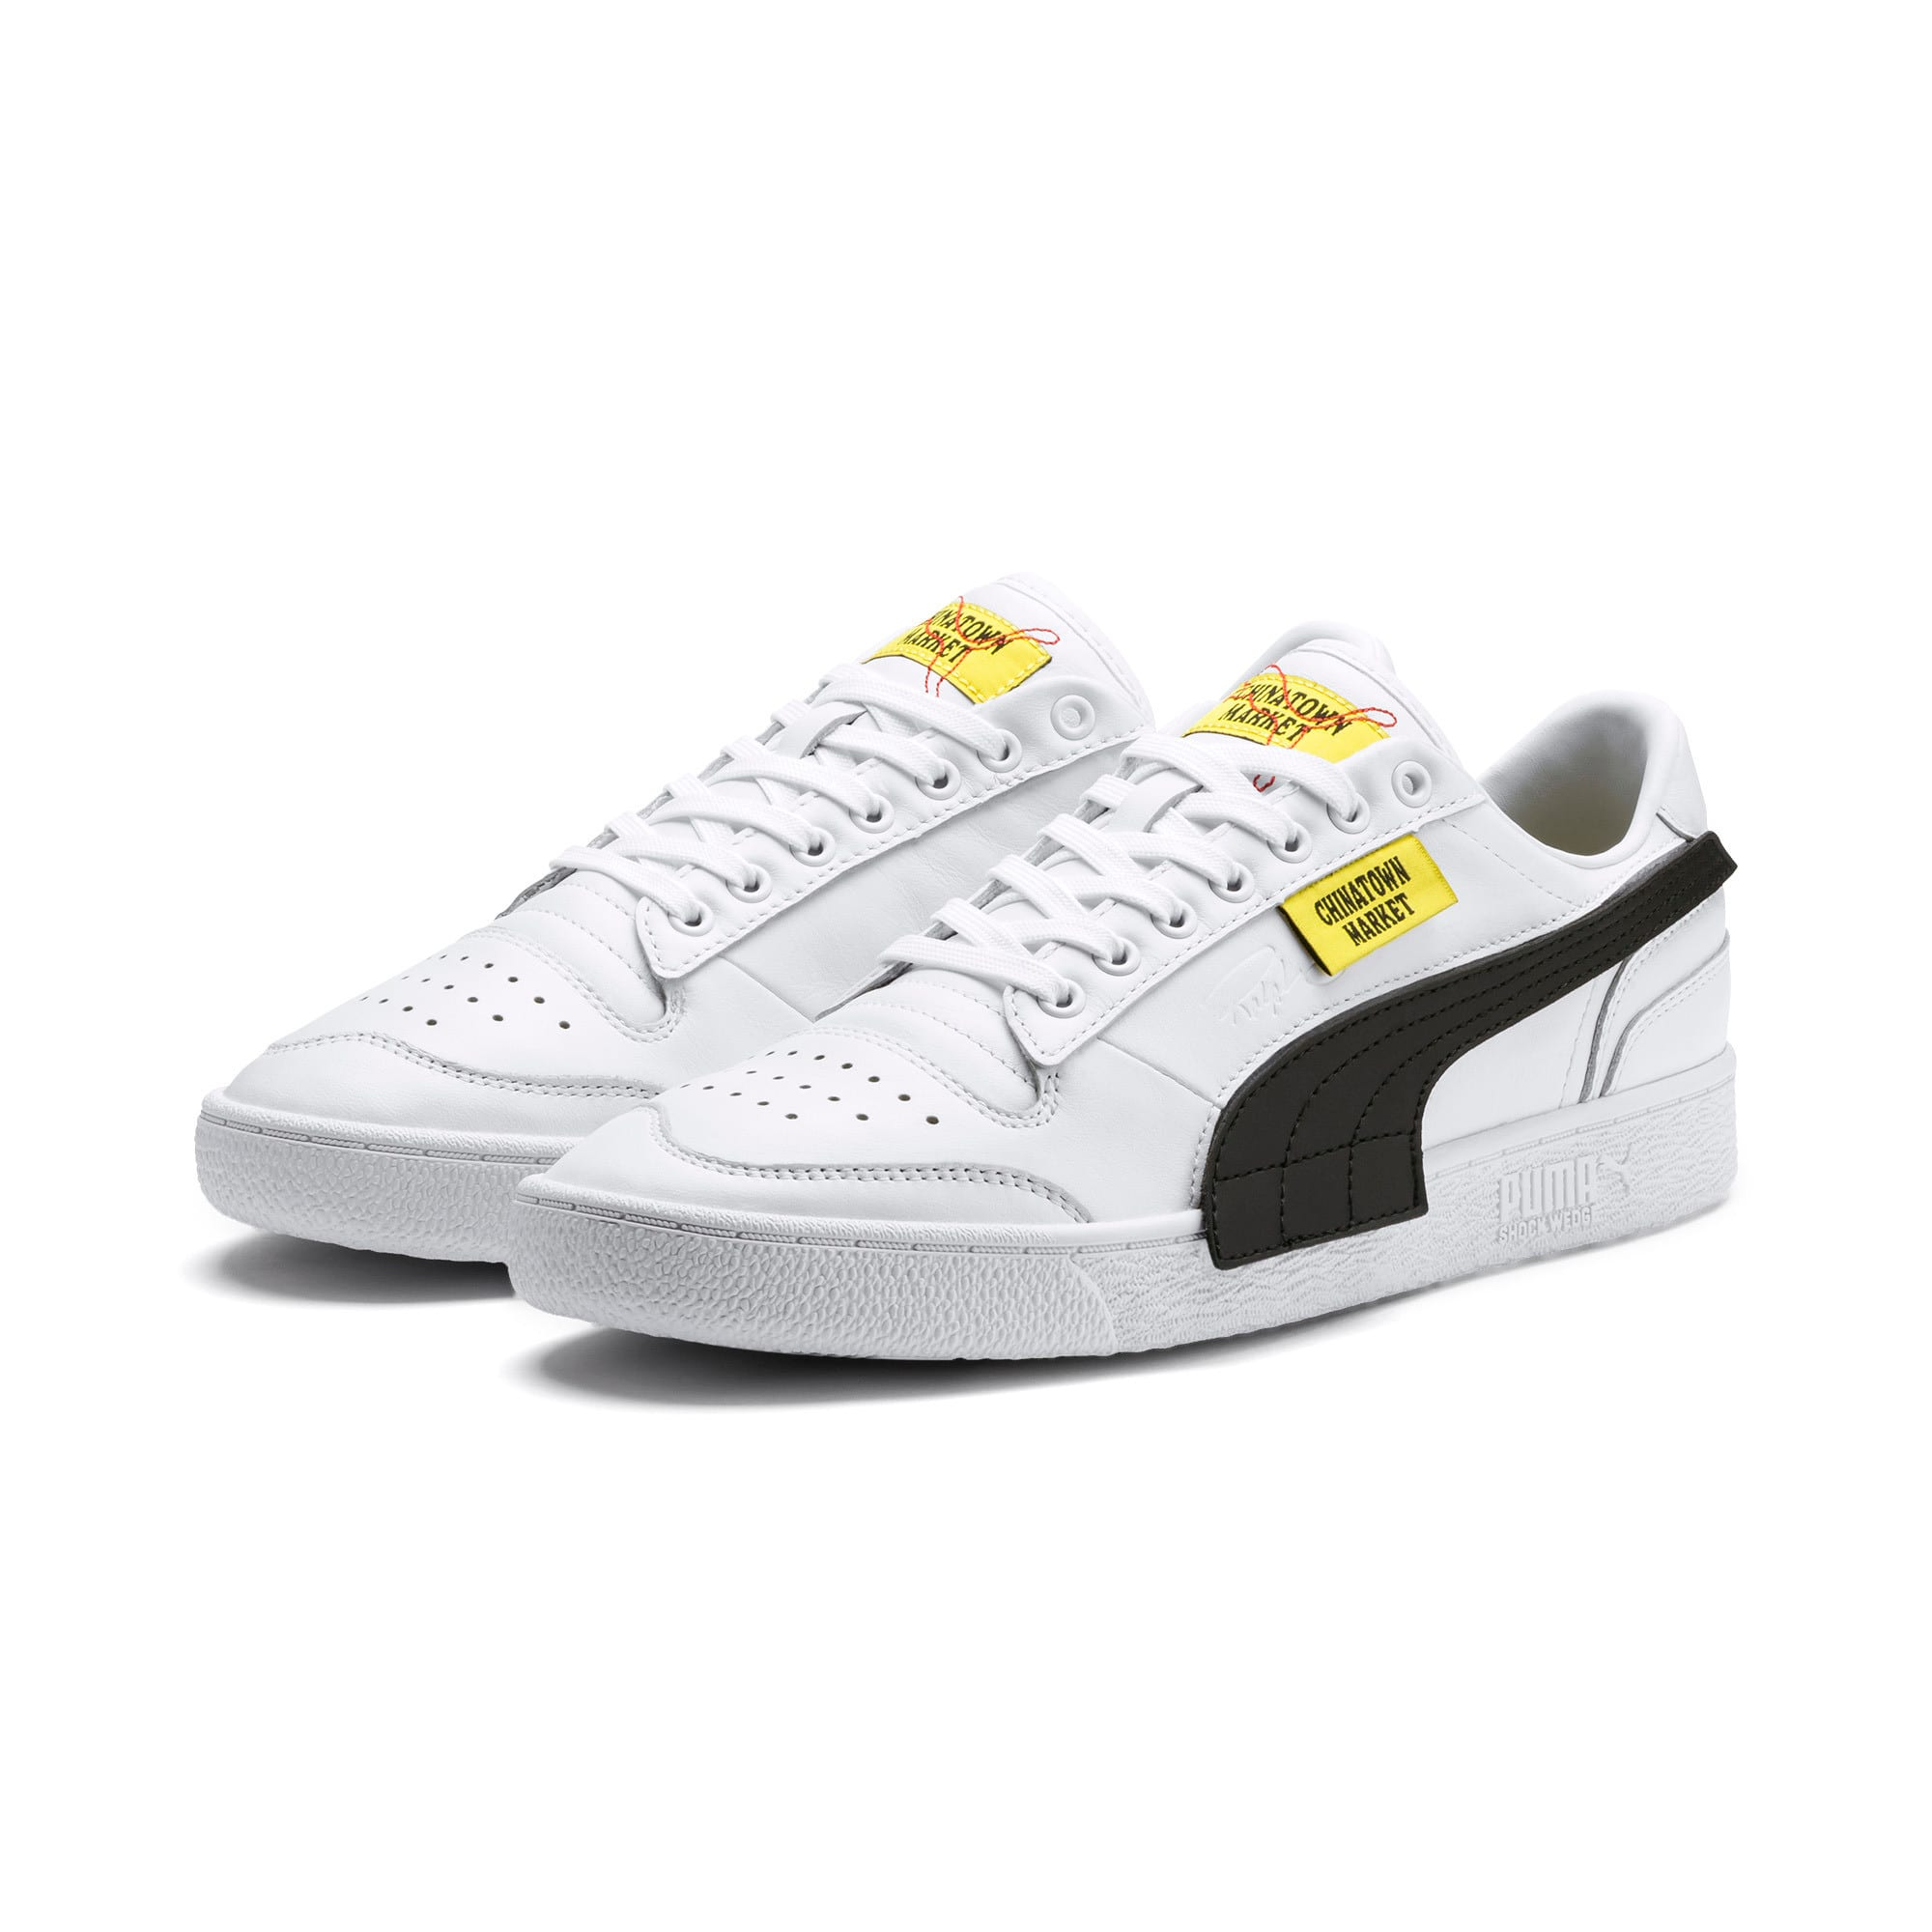 Thumbnail 7 of PUMA x CHINATOWN MARKET ラルフ サンプソン ローカット スニーカー, Puma White, medium-JPN